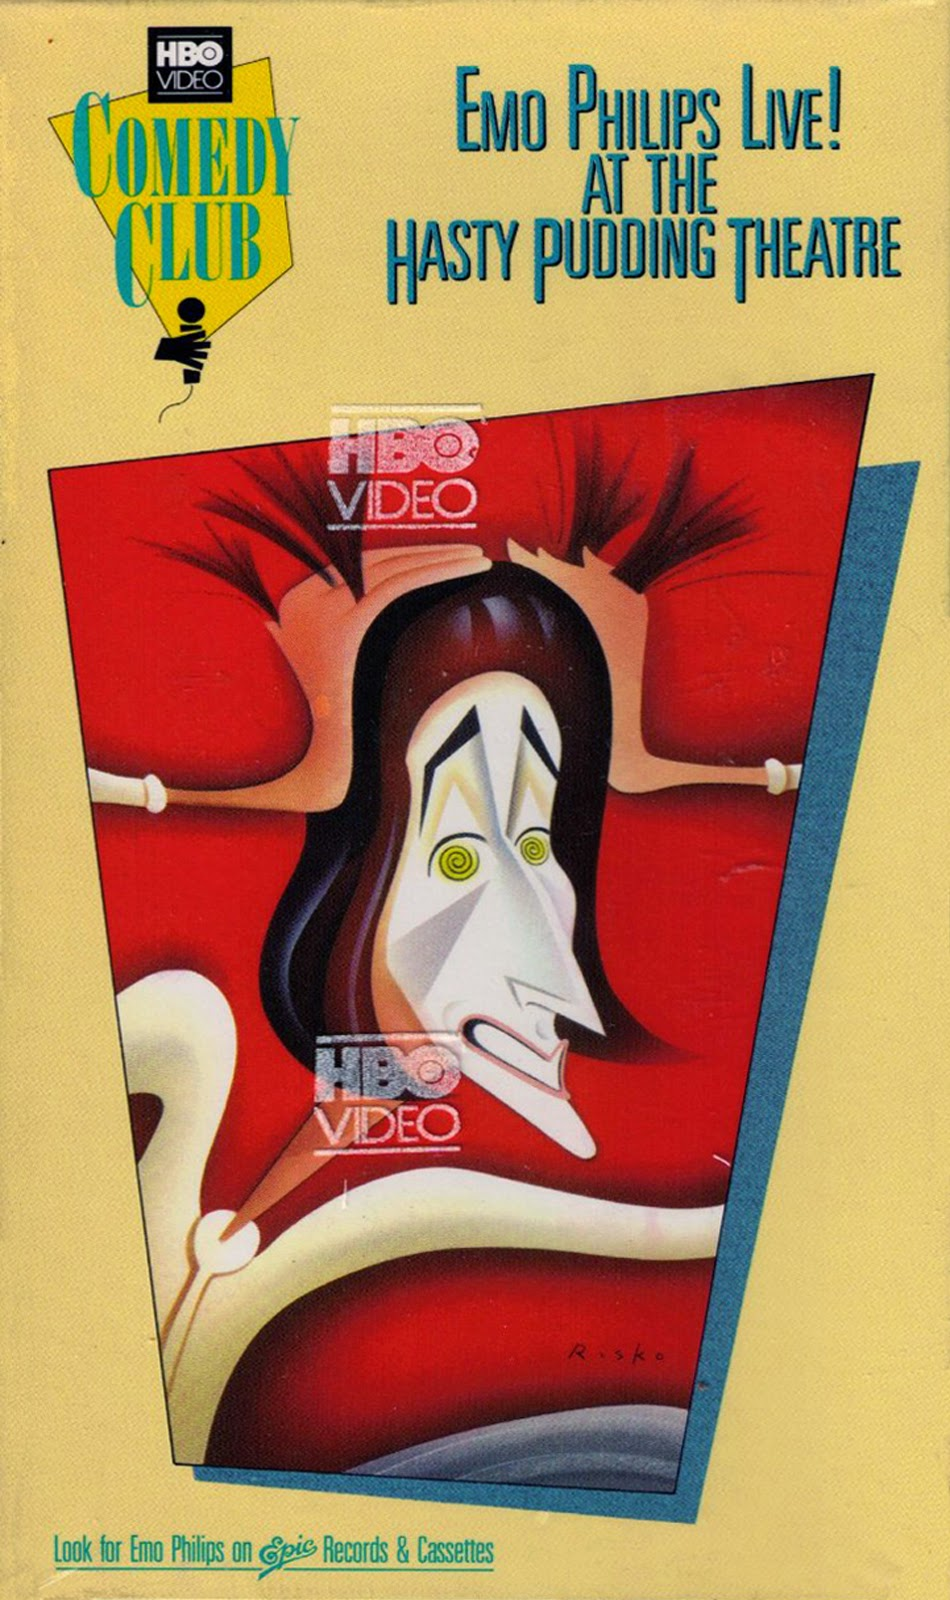 vintage stand up comedy emo philips e mo plus live at the live at the hasty pudding theatre video